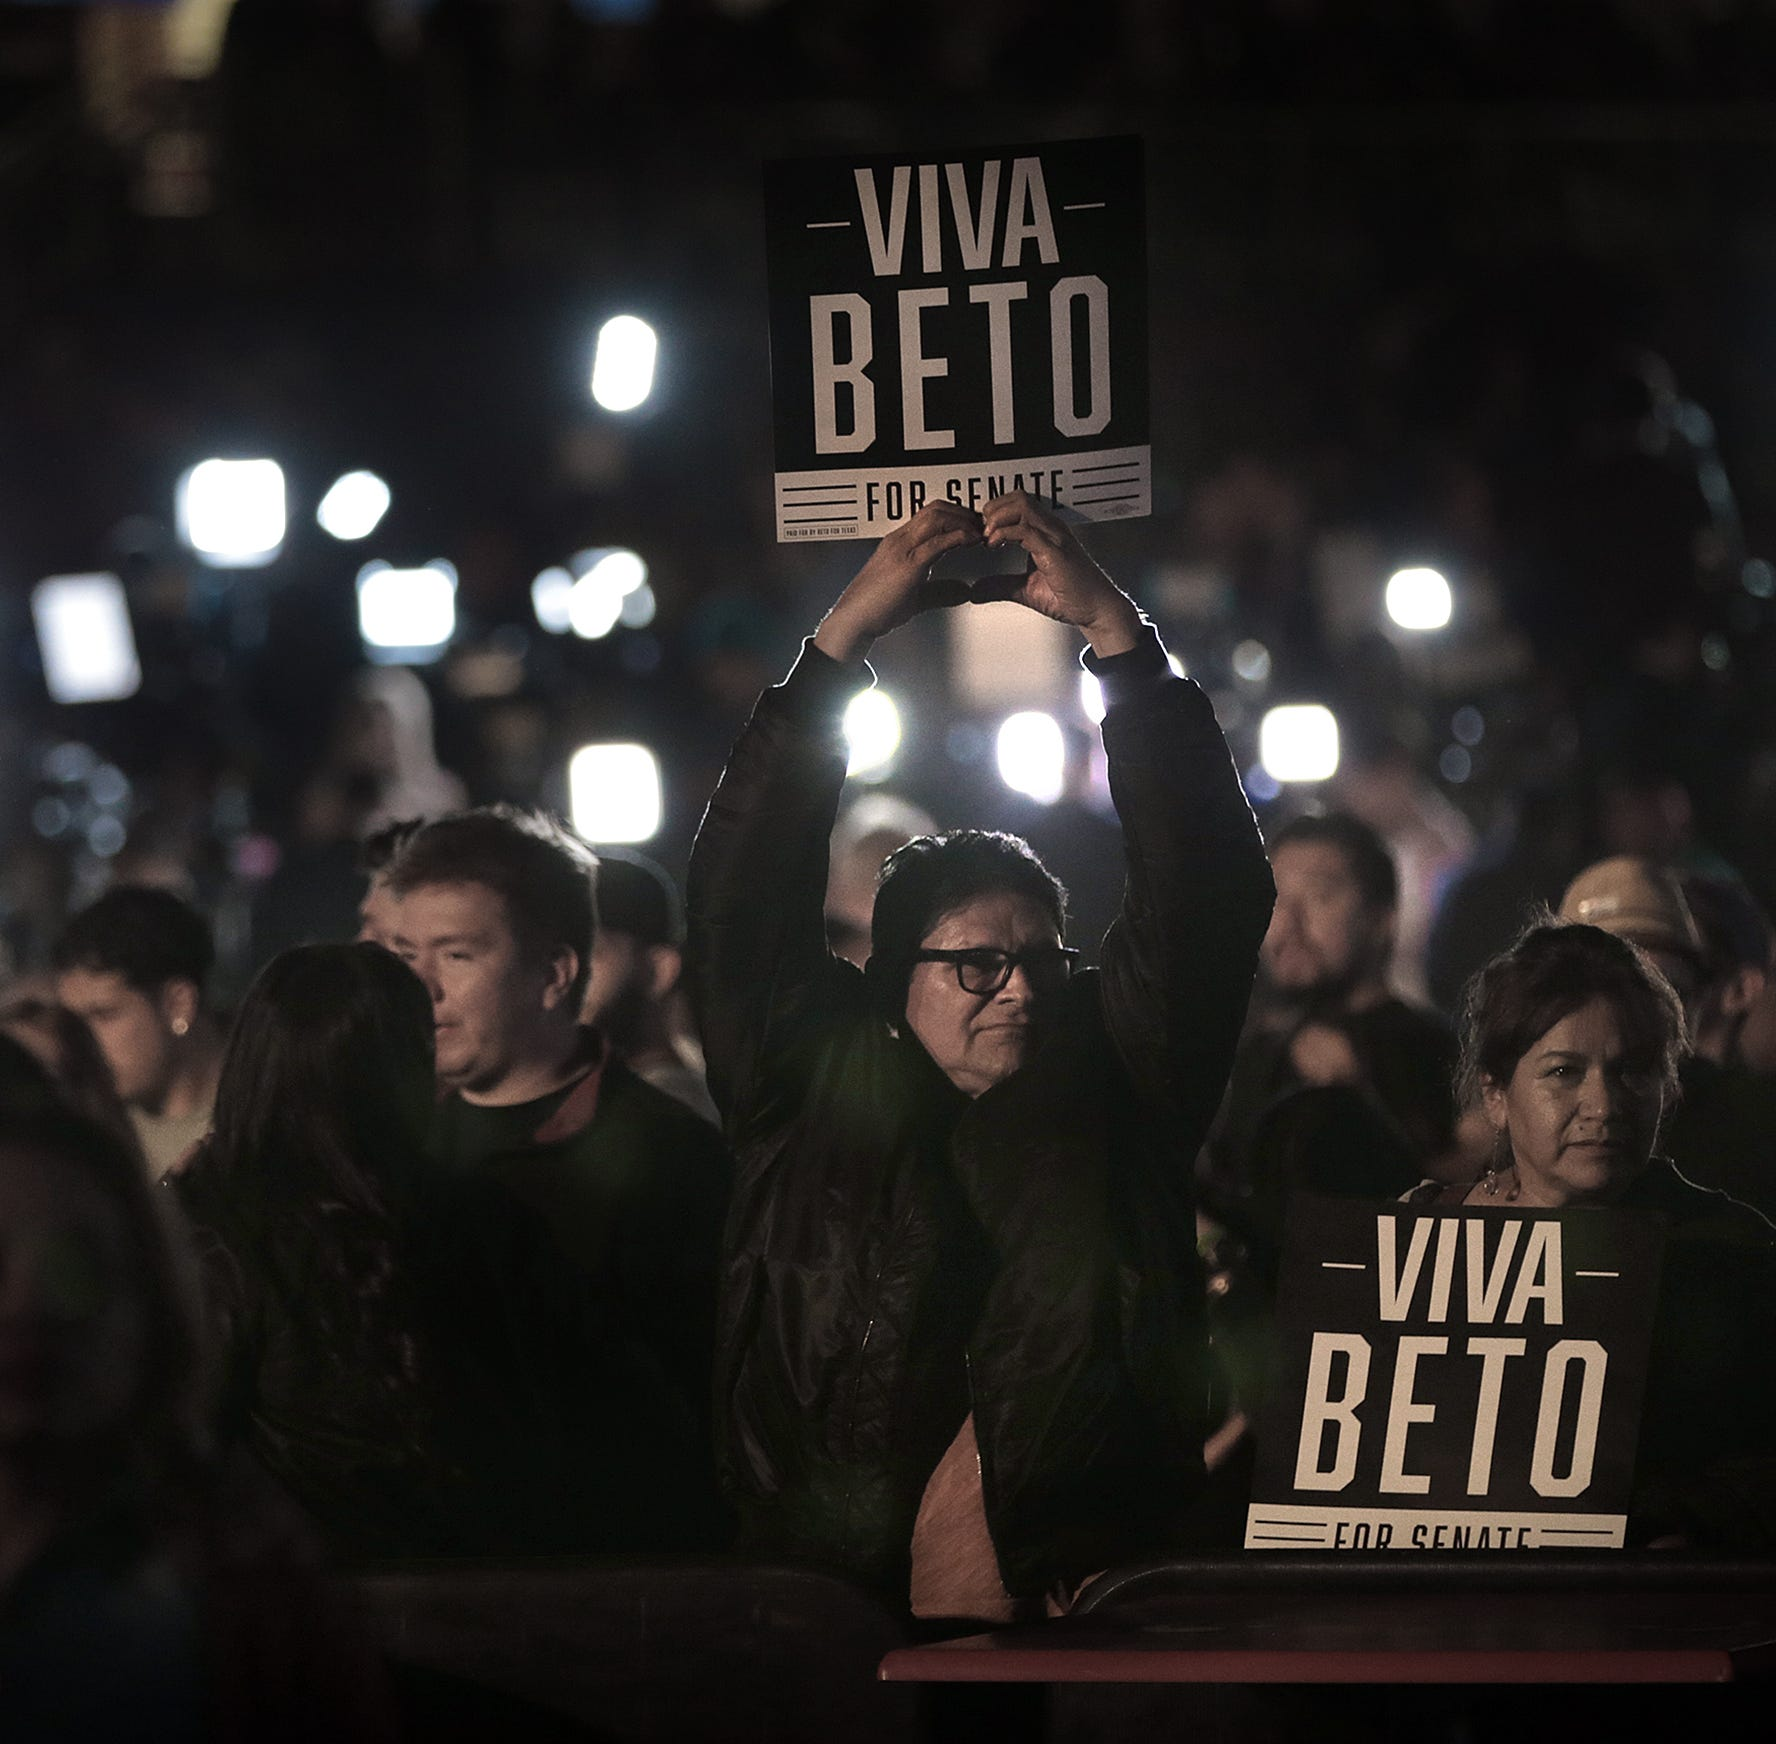 Thanks, Beto: El Paso's story is out, and people can find us on map: Kathy Blalock Molinar